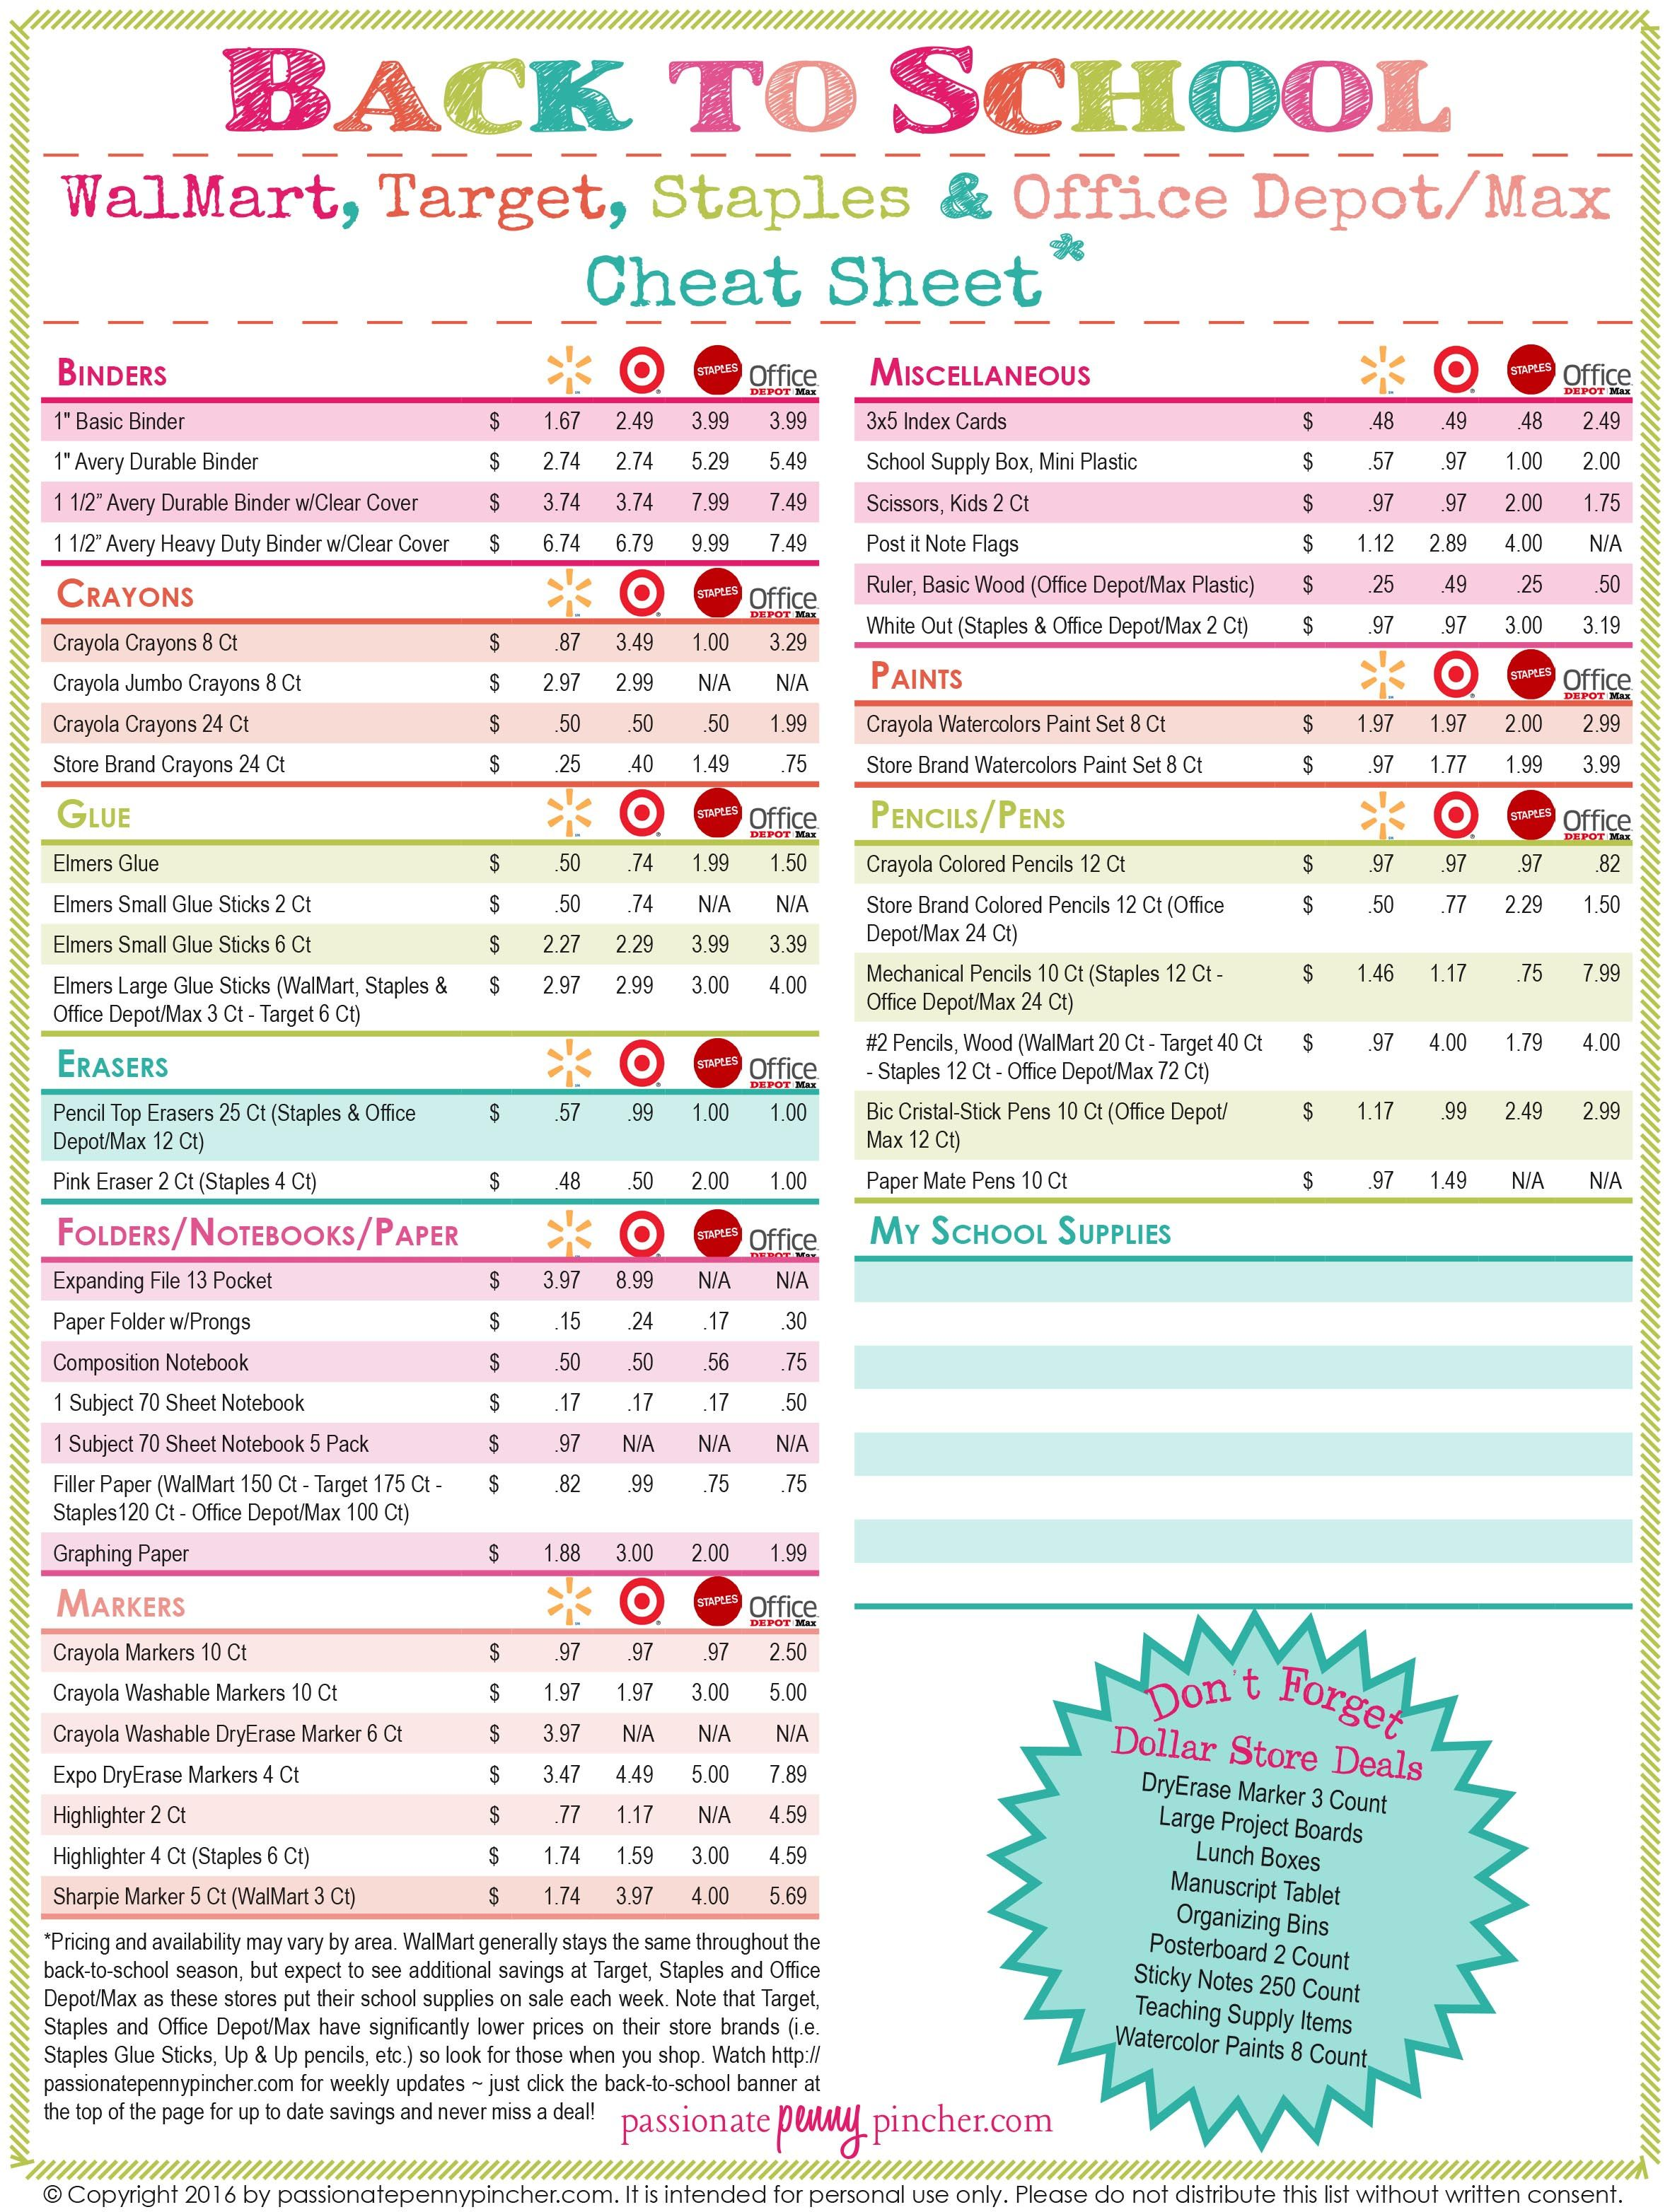 Back To School Cheat Sheet Where To Get The Best Deals On